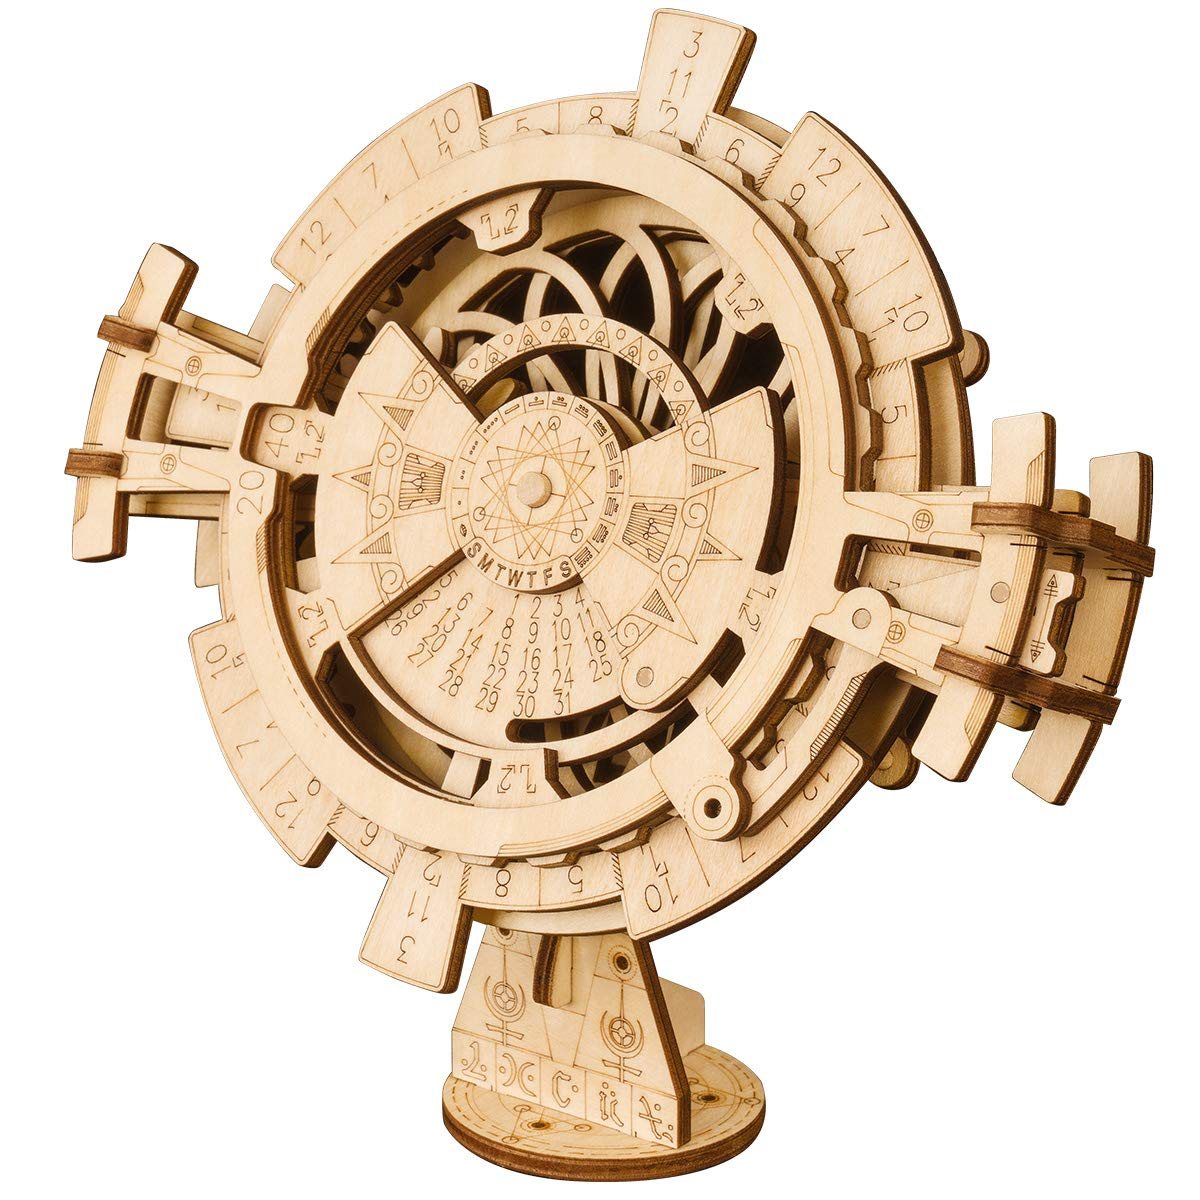 ROBOTIME 3D Wooden Mechanical Puzzle DIY Perpetual Calendar Craft Kits Laser-Cut Model Kit to Build for Adults Great Birthday for Women and Men by ROBOTIME